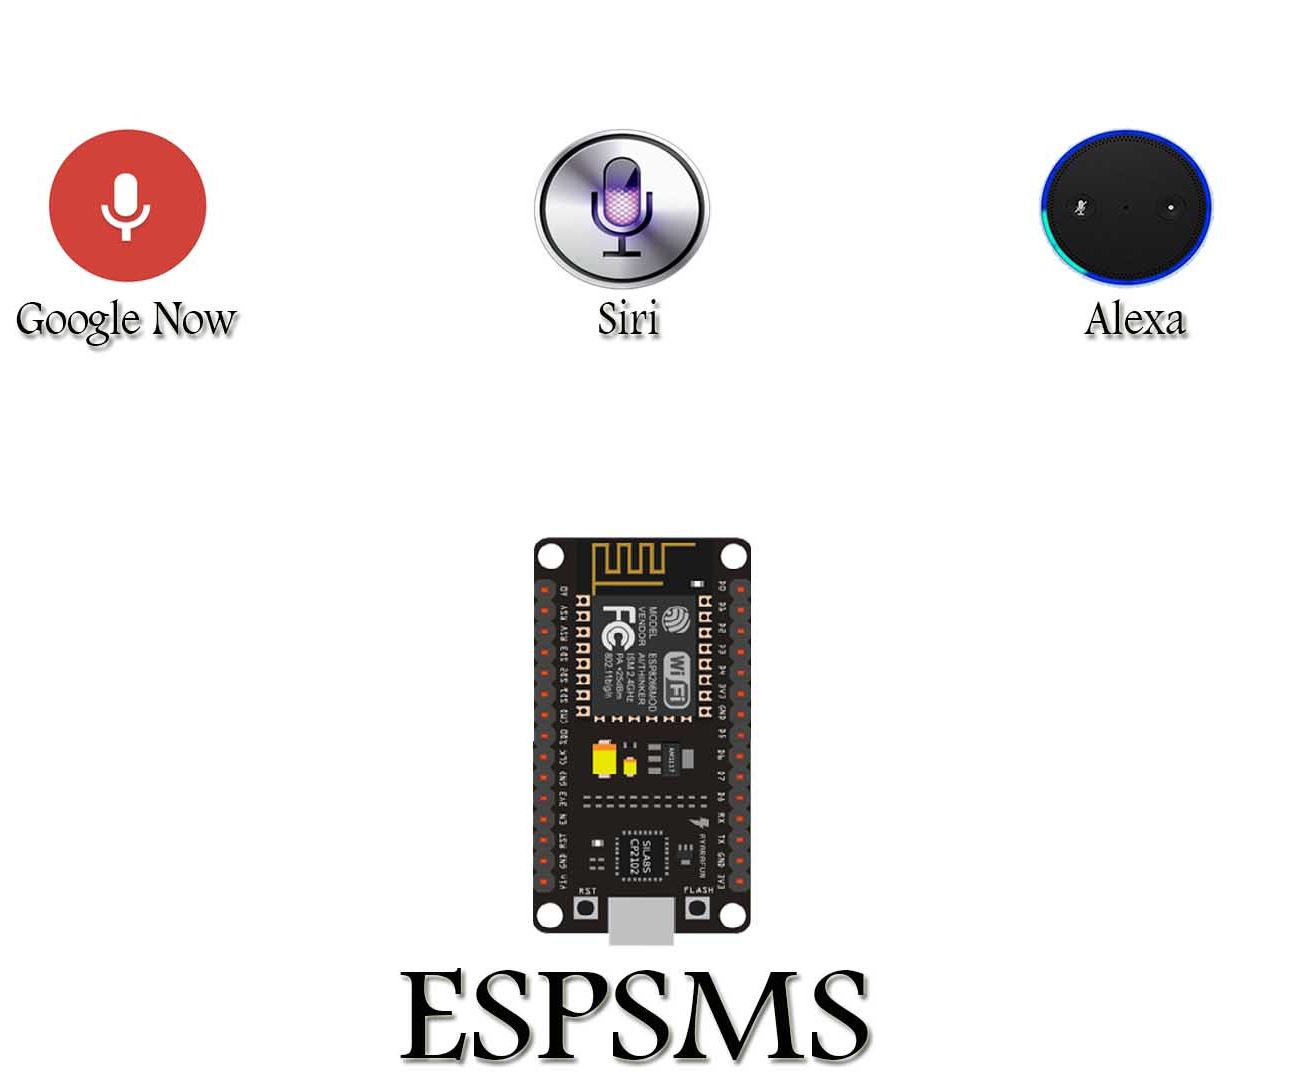 DIY personal assistant ESPSMS using Esp8266 12e